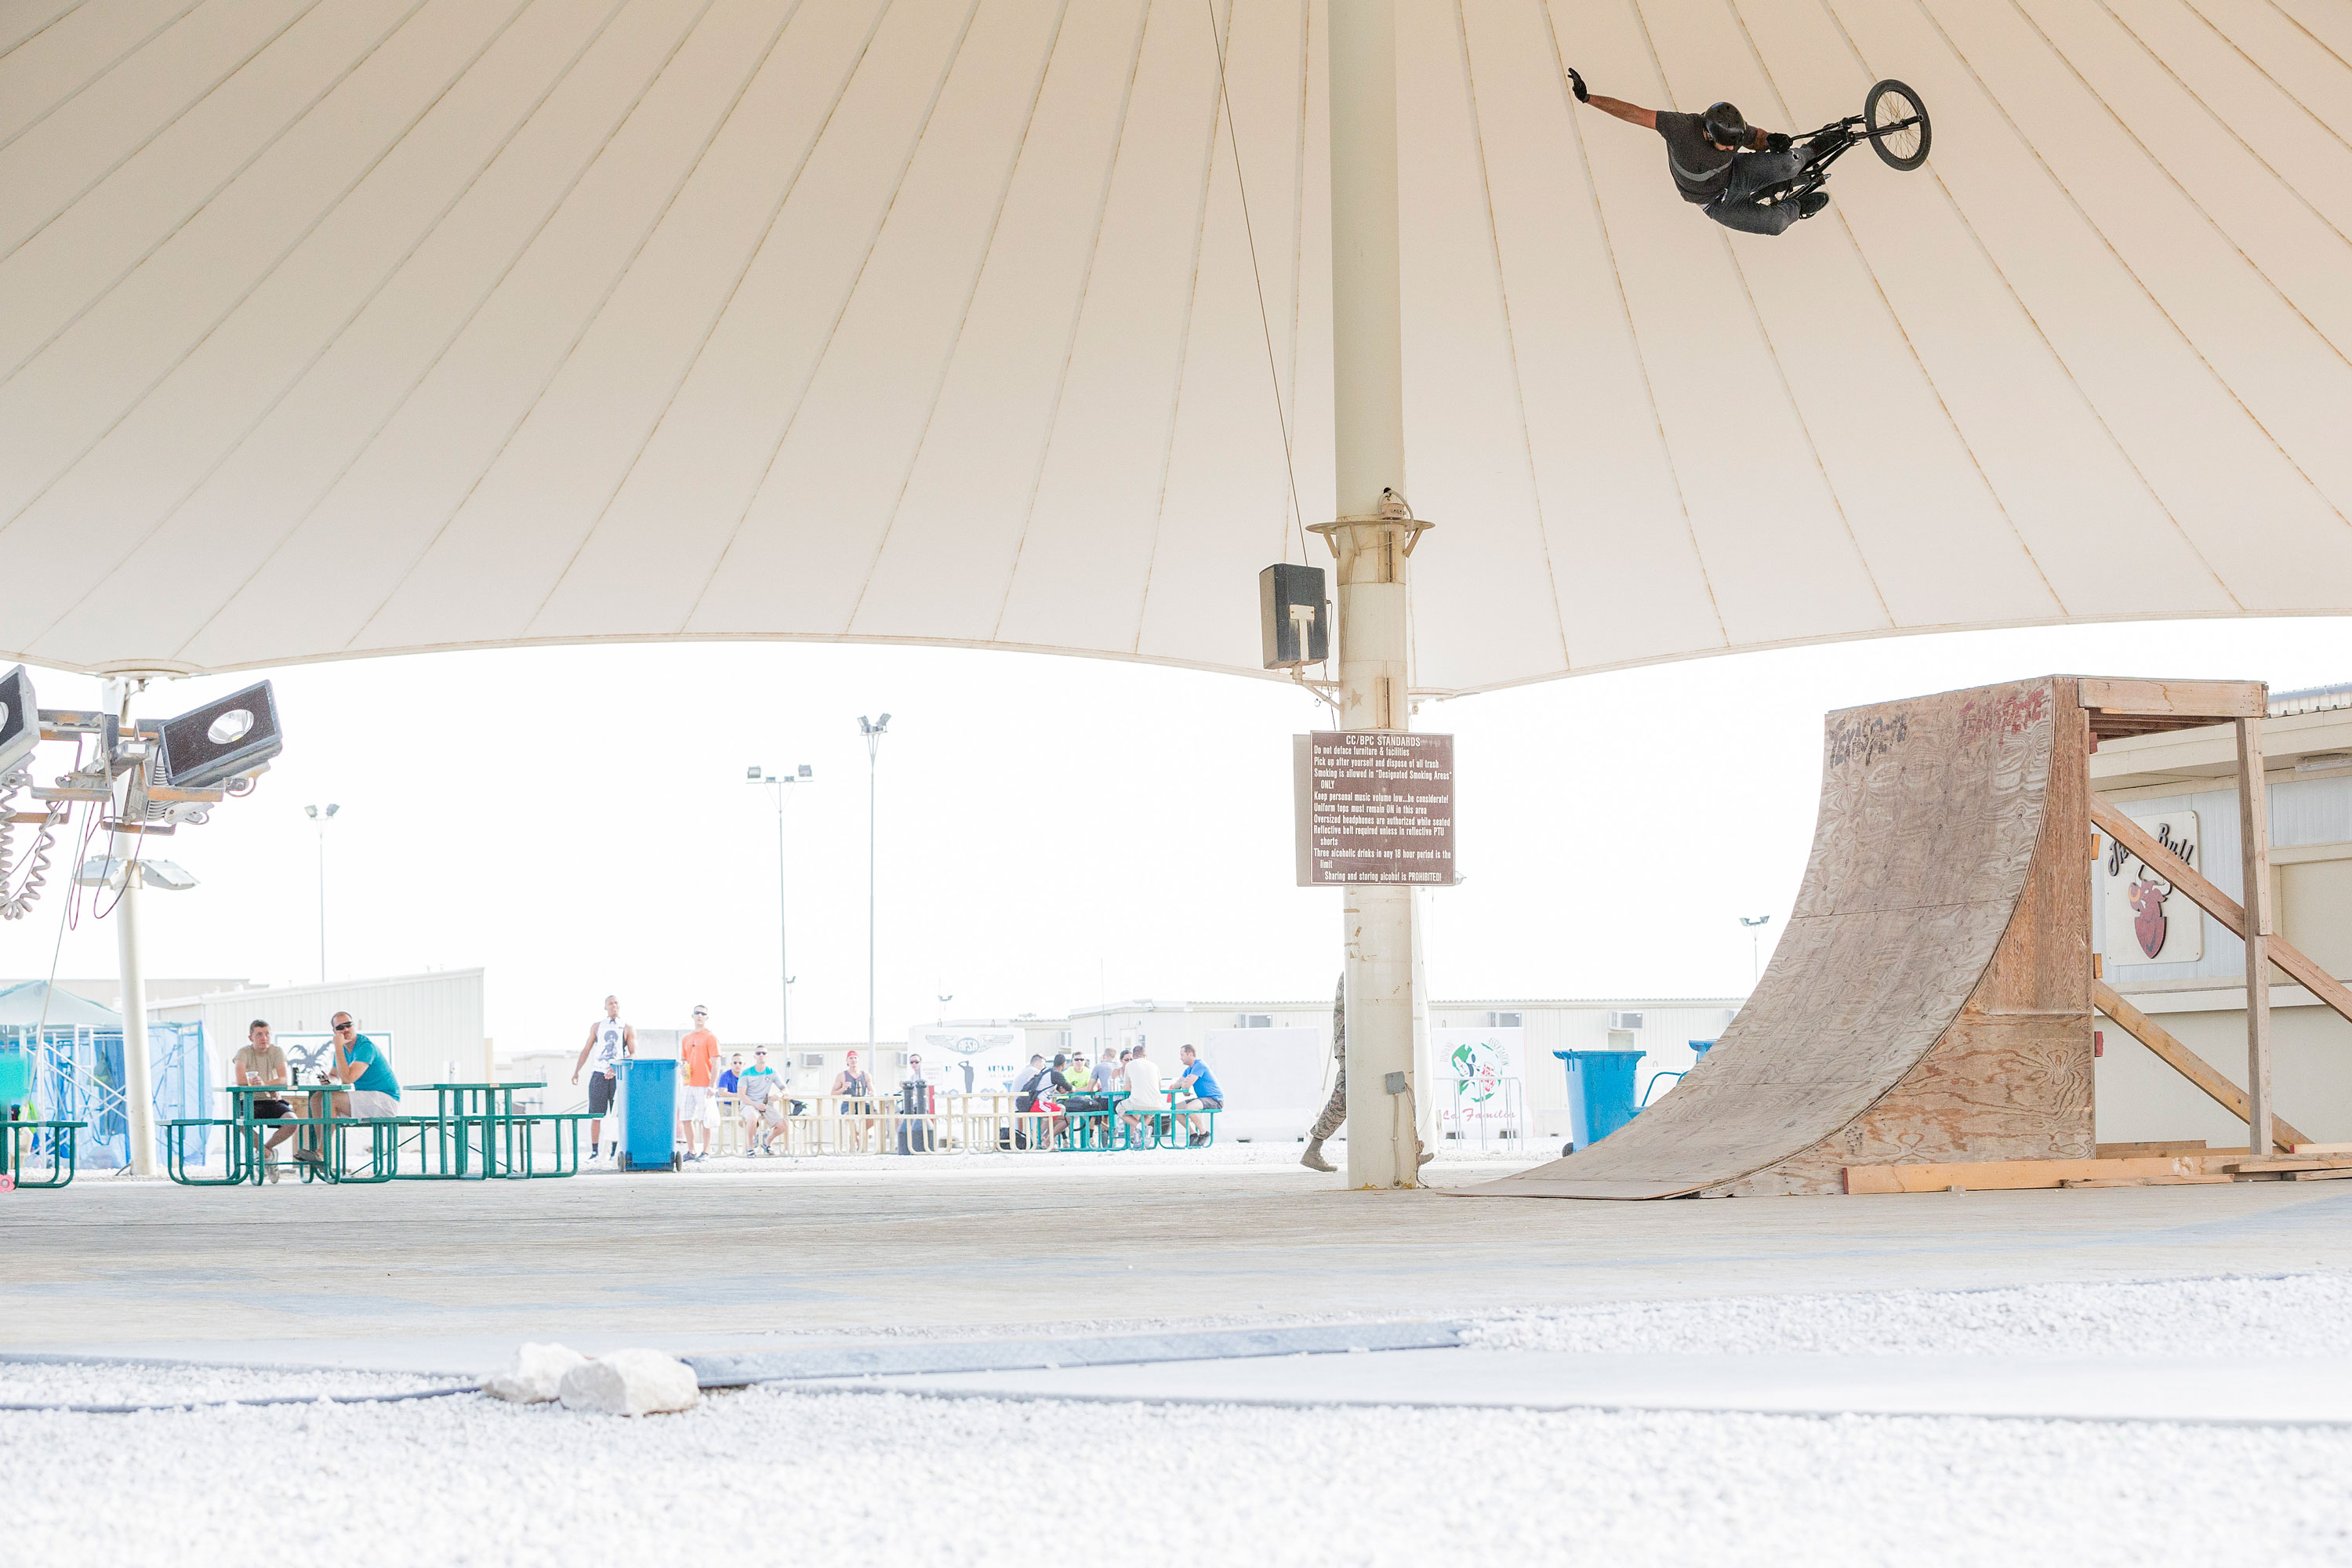 Catch Some Air With BMX Rider And #JOBYAmbassadors Rob Darden